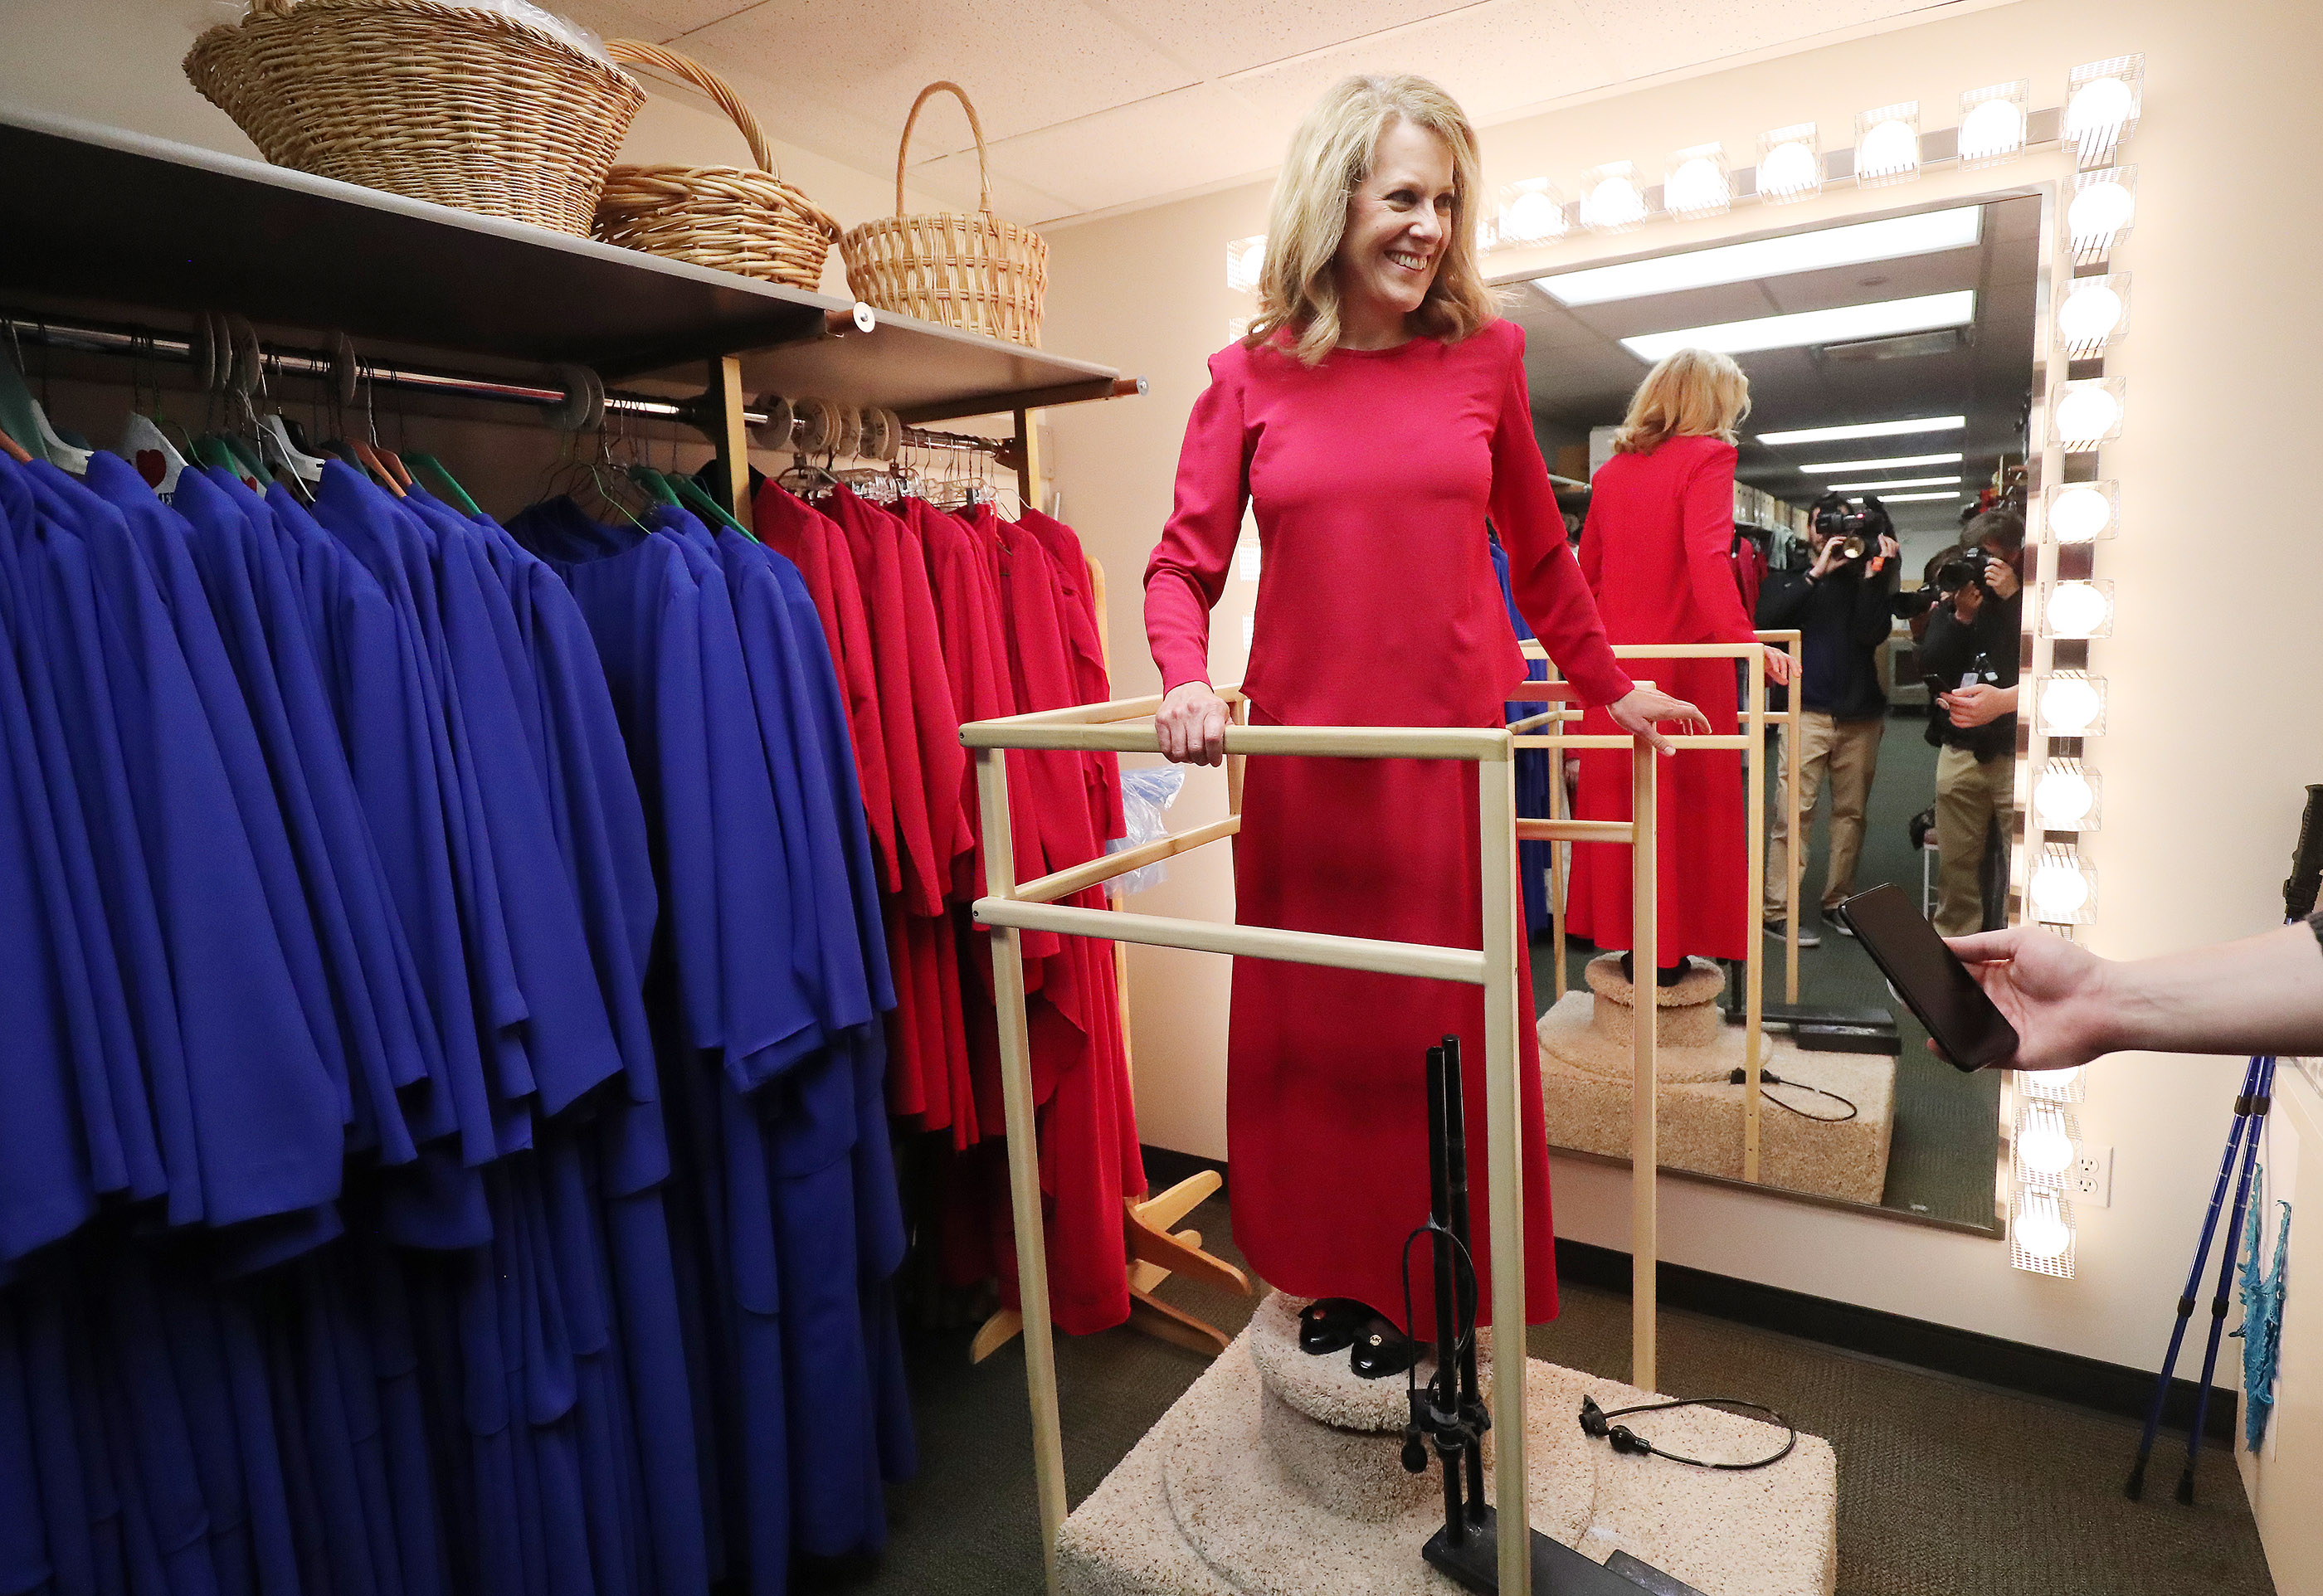 Debbie Matheson tries on a dress in preparation to sing with The Tabernacle Choir at Temple Square during a rehearsal in Salt Lake City on Thursday, April 11, 2019. Four people were selected through social media to sing with the choir.